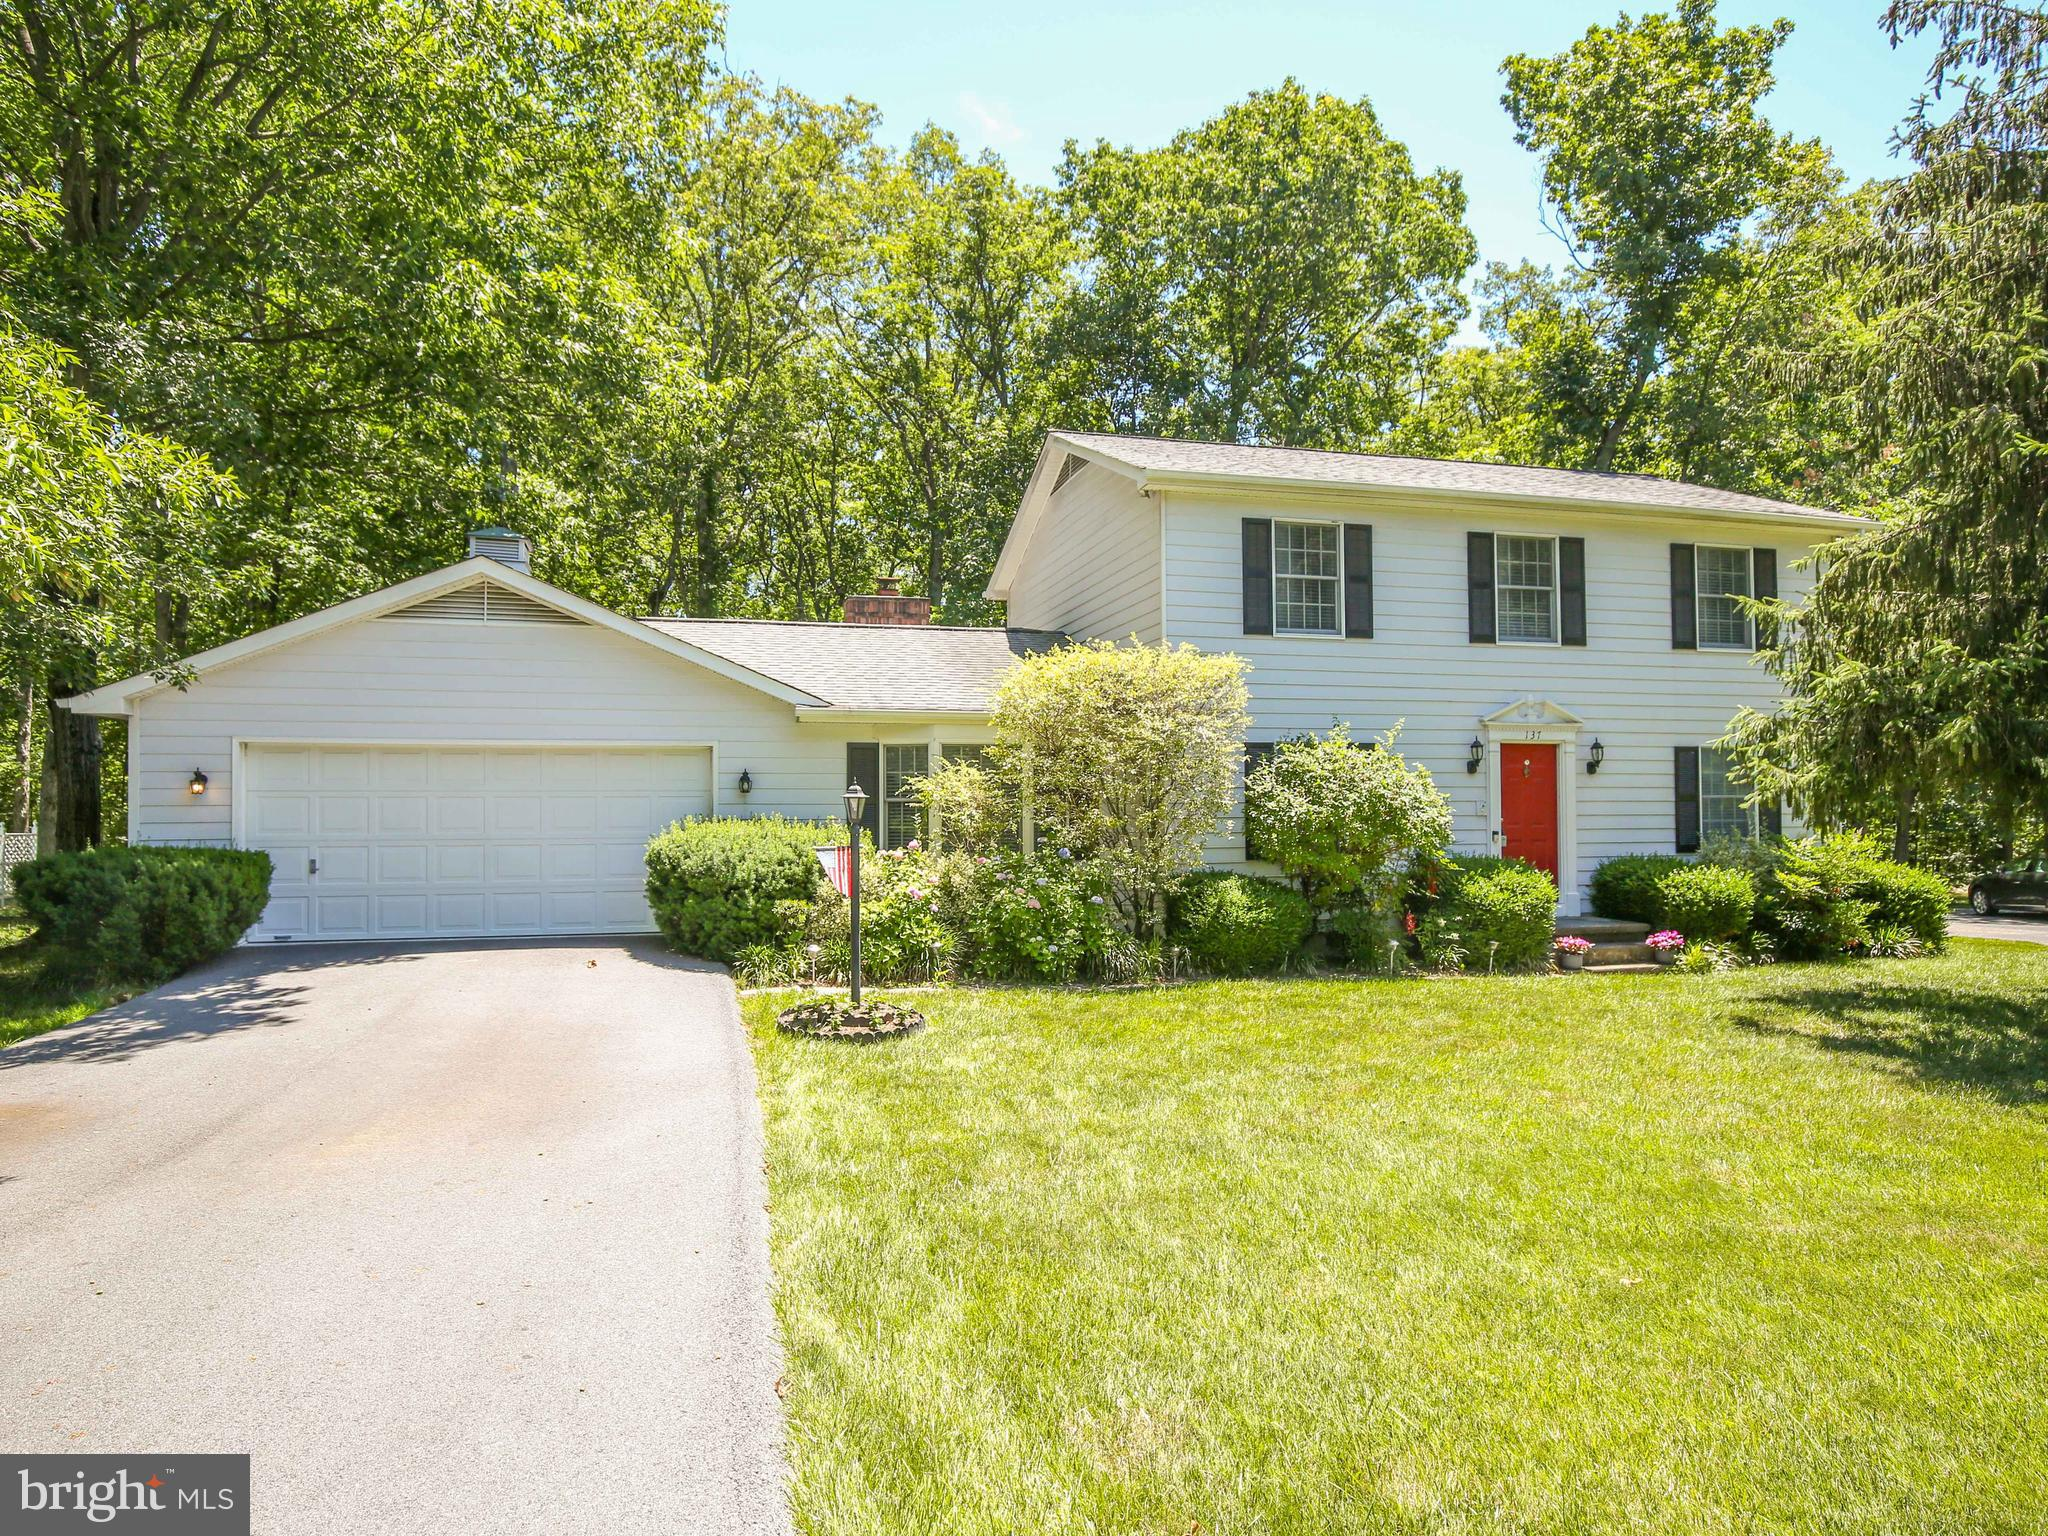 Well maintained 3 Bedroom 2.5 Bath Two-Story located in a Cul-de-sac and Backs to Trees!  High Speed